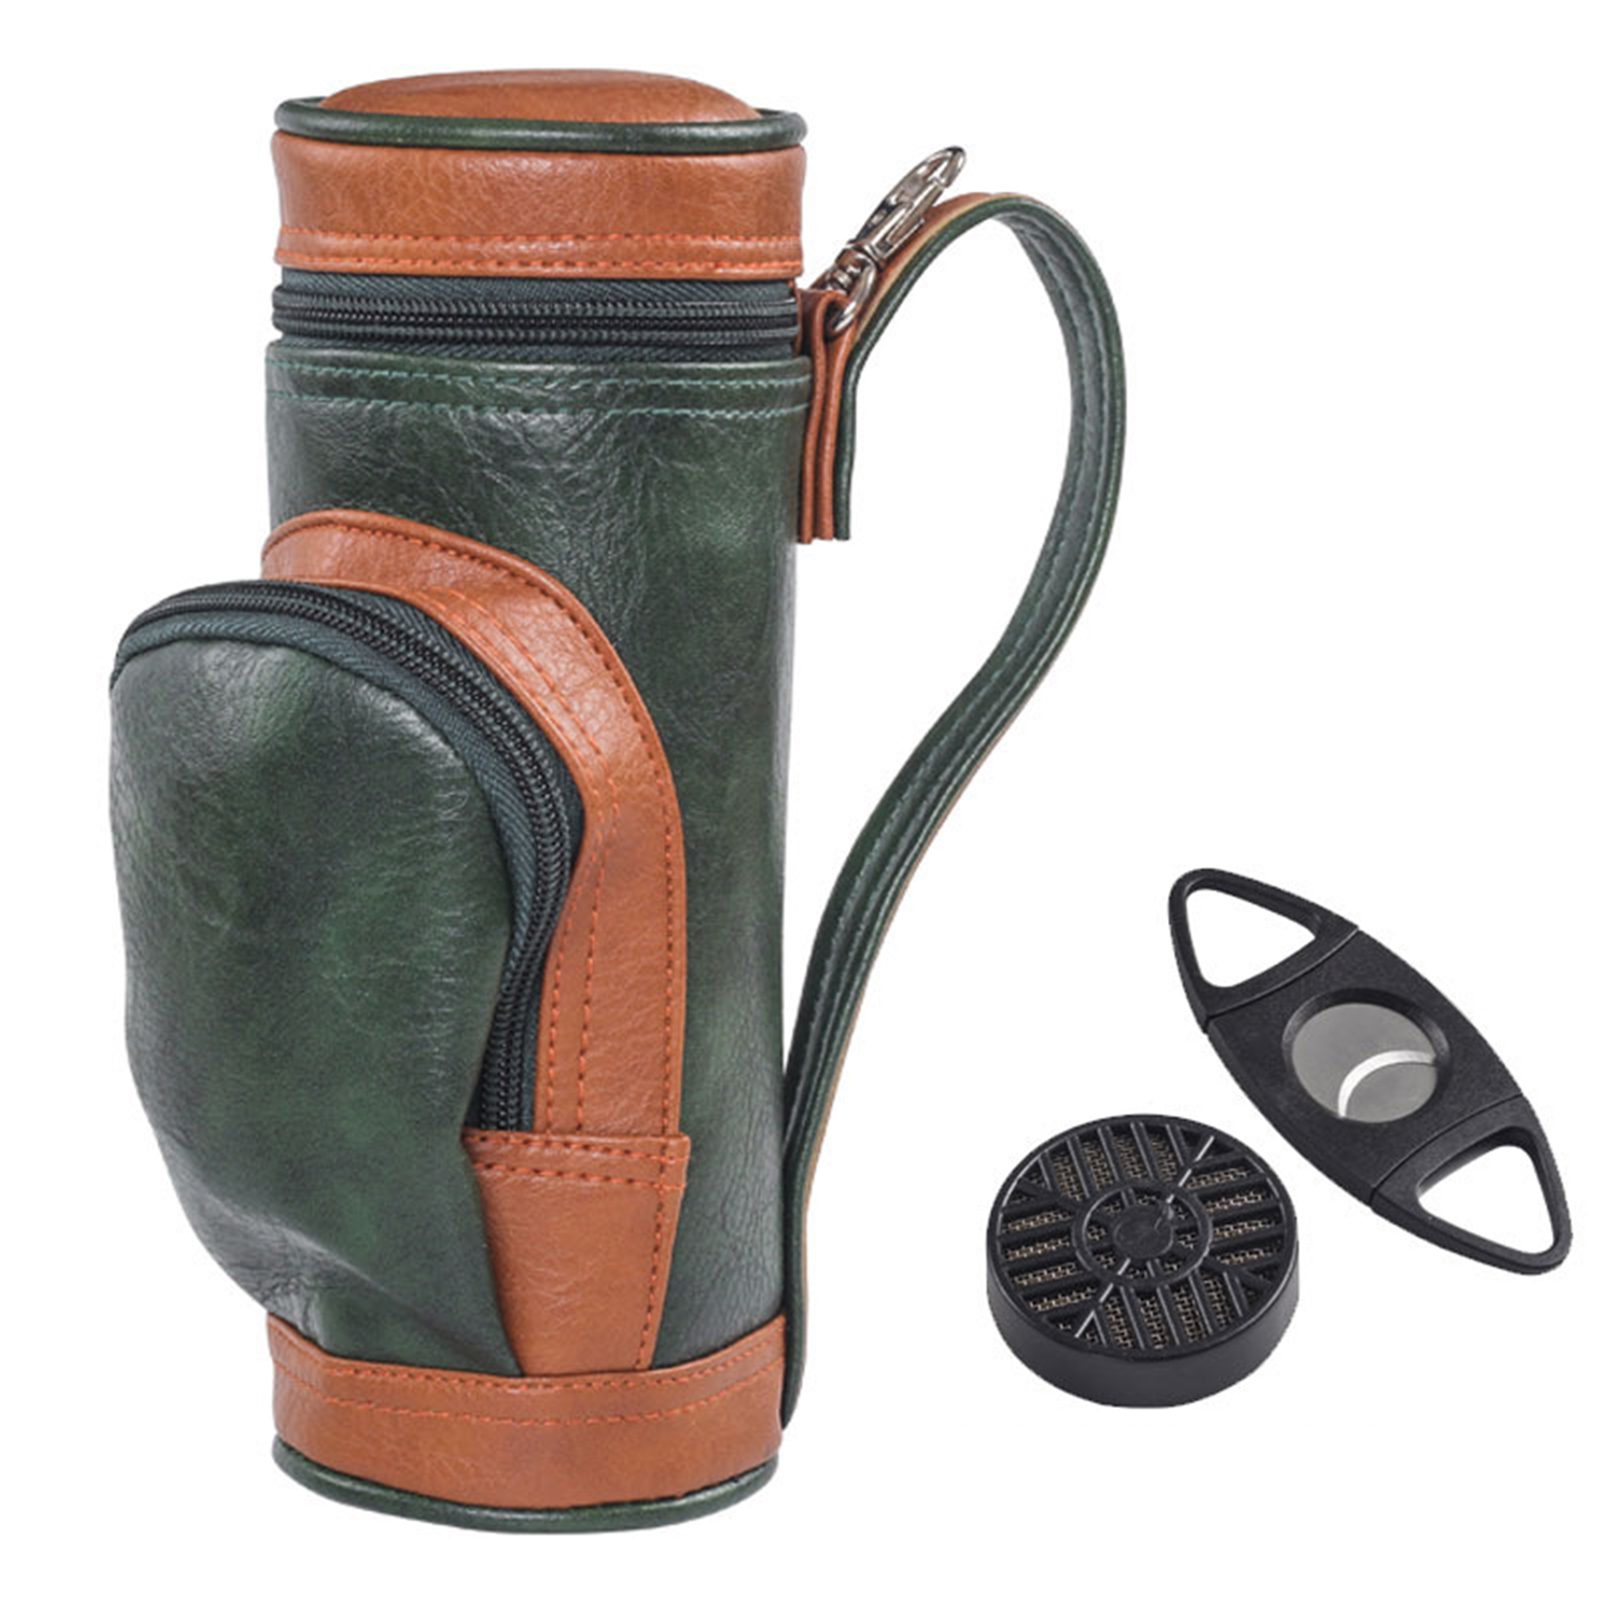 Multifunctional Functional Golf Cigar Bag Portable Cigar Case Holder With Cigar Cutter Suitable For Family Travel Camping Bags 1